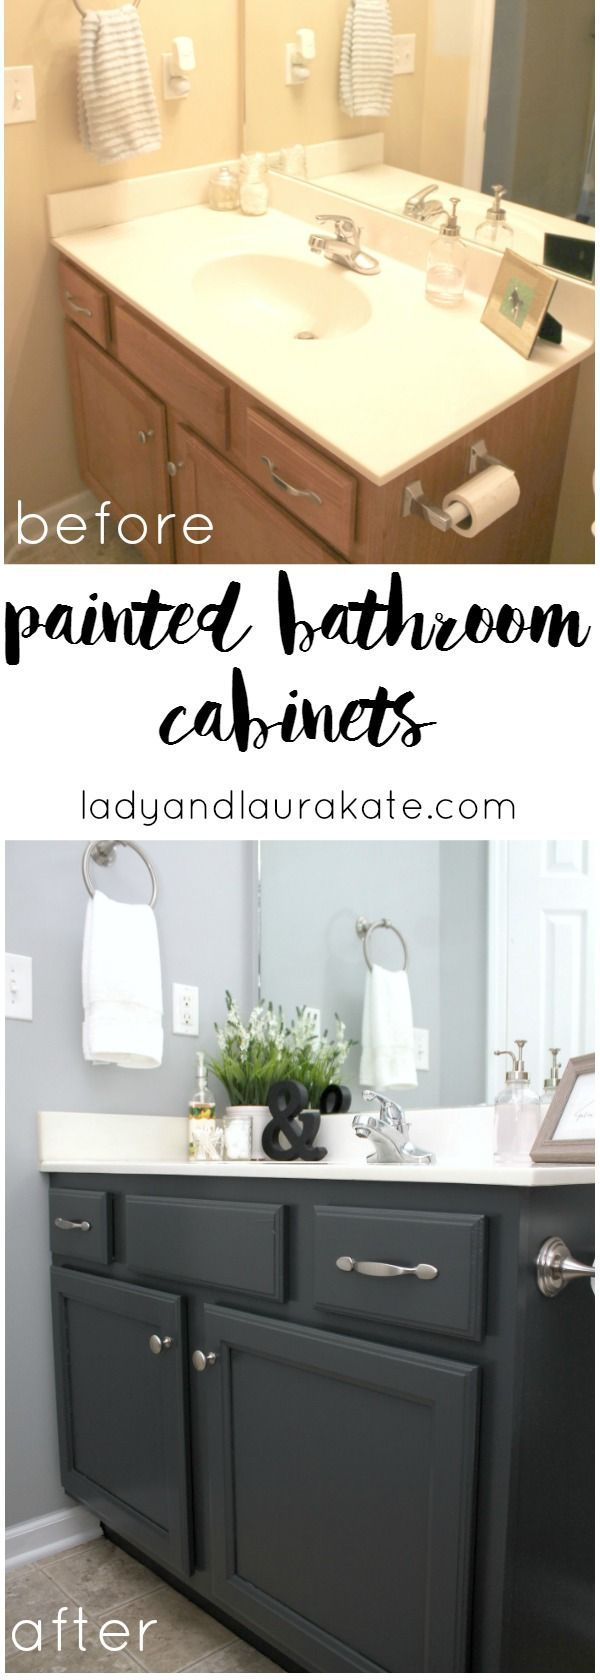 Easy Way to Paint your Bathroom Cabinets | Painted bathroom cabinets ...